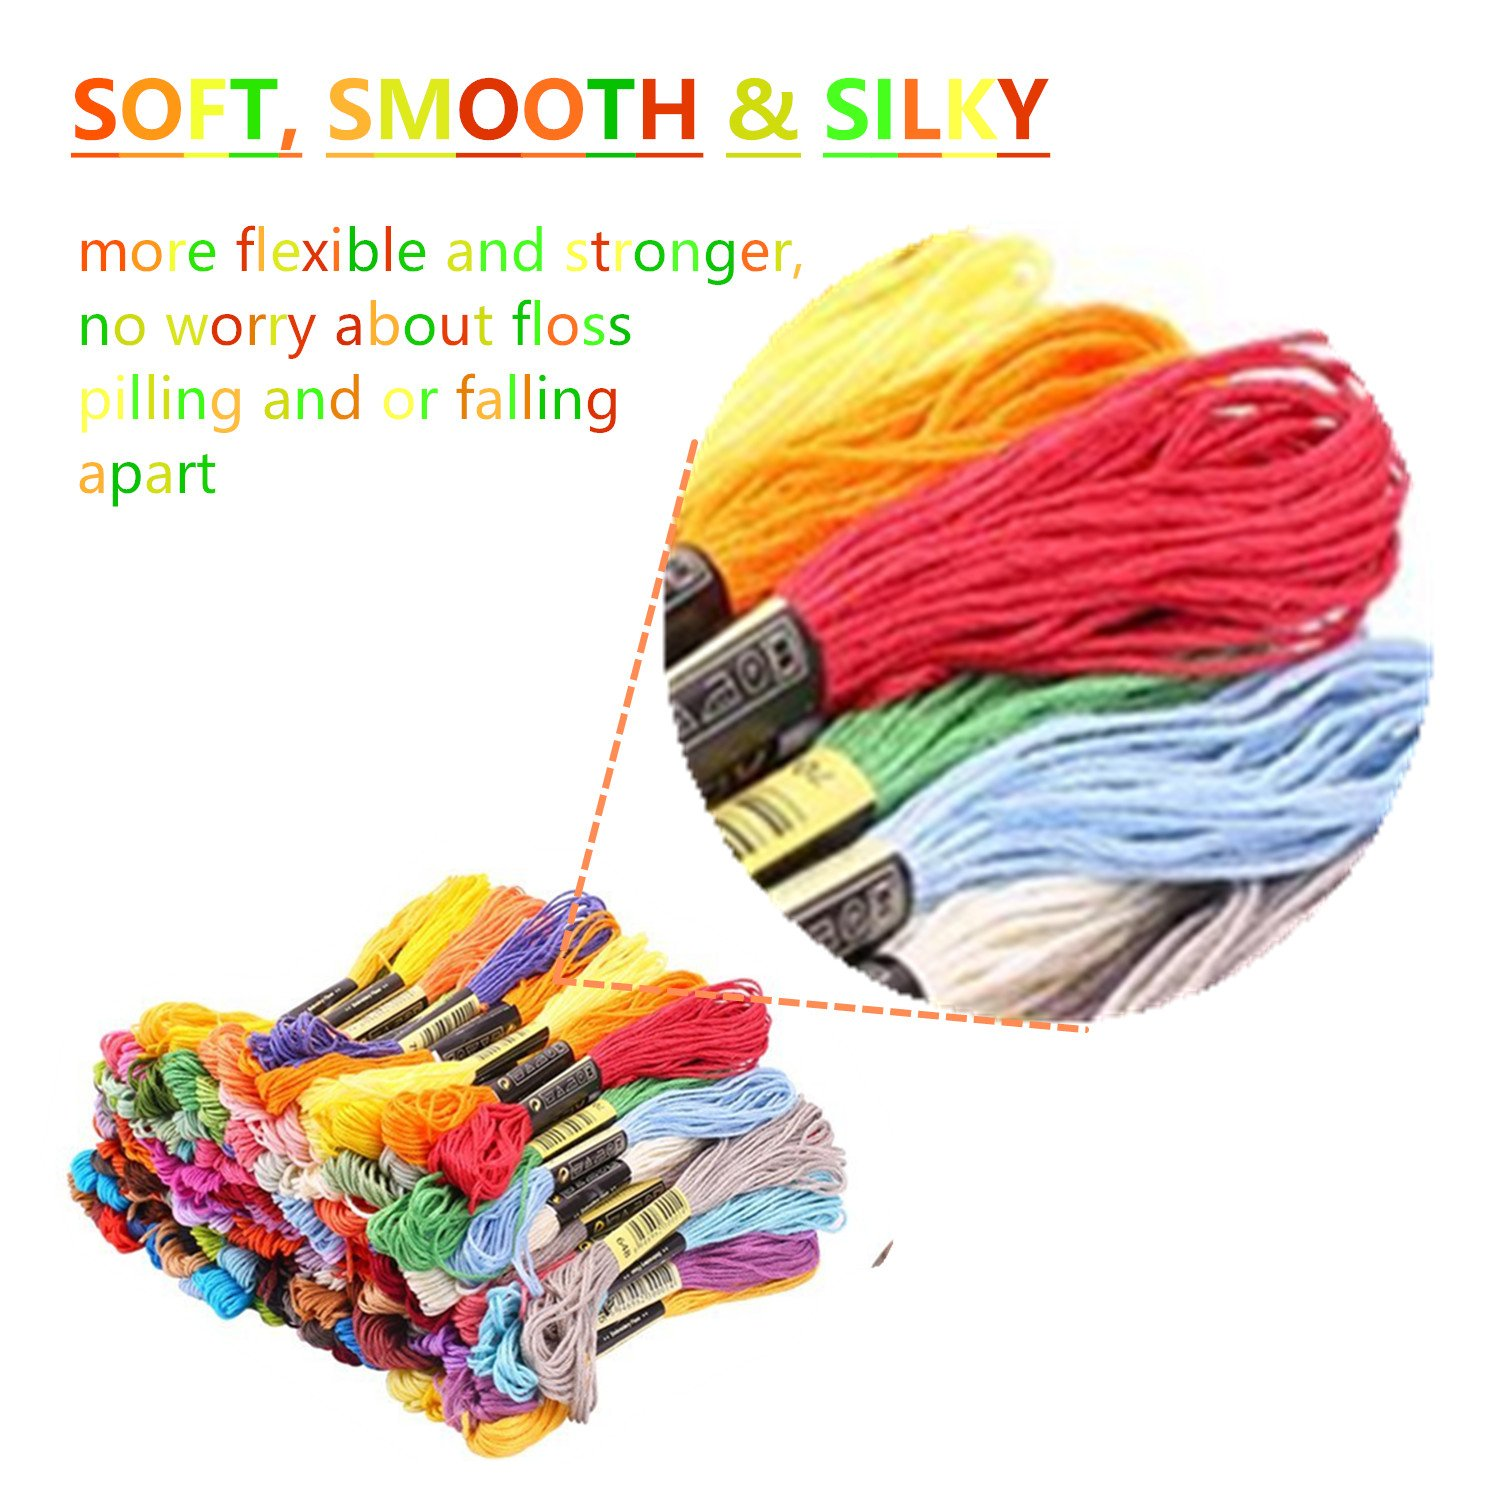 Embroidery Floss Thread 72 Kit TICOSH Premium Rainbow Colors Craft Floss for Friendship Bracelets String Cross Stitch Floss with 9 Needles, 10 Floss Robbins, 1 Needle-Threading, 1 Thimble and 1 Untwist Tool (50)